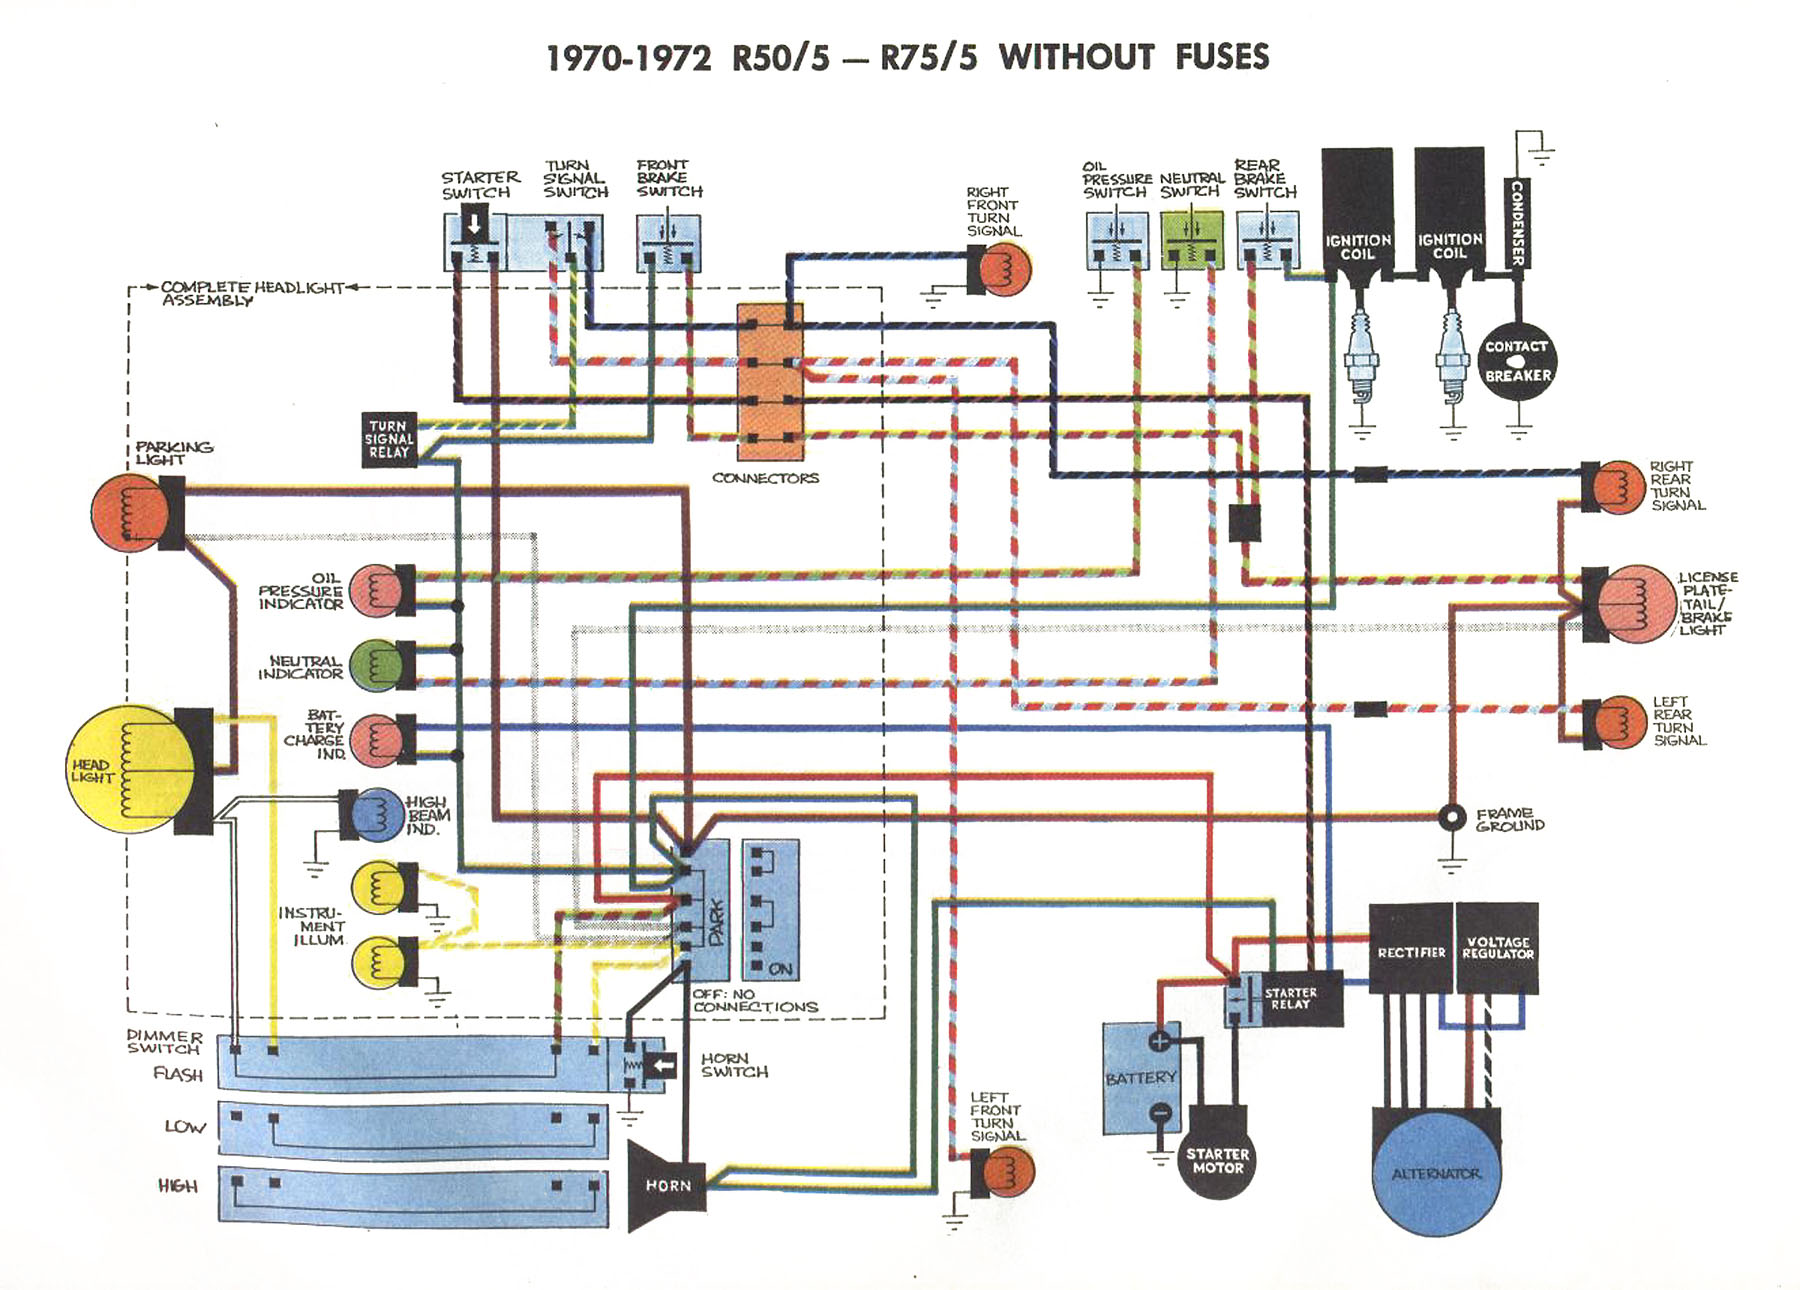 5_unfused_schematic 5 united articles wiring diagrams bmw r100rs gauge wiring diagram at eliteediting.co